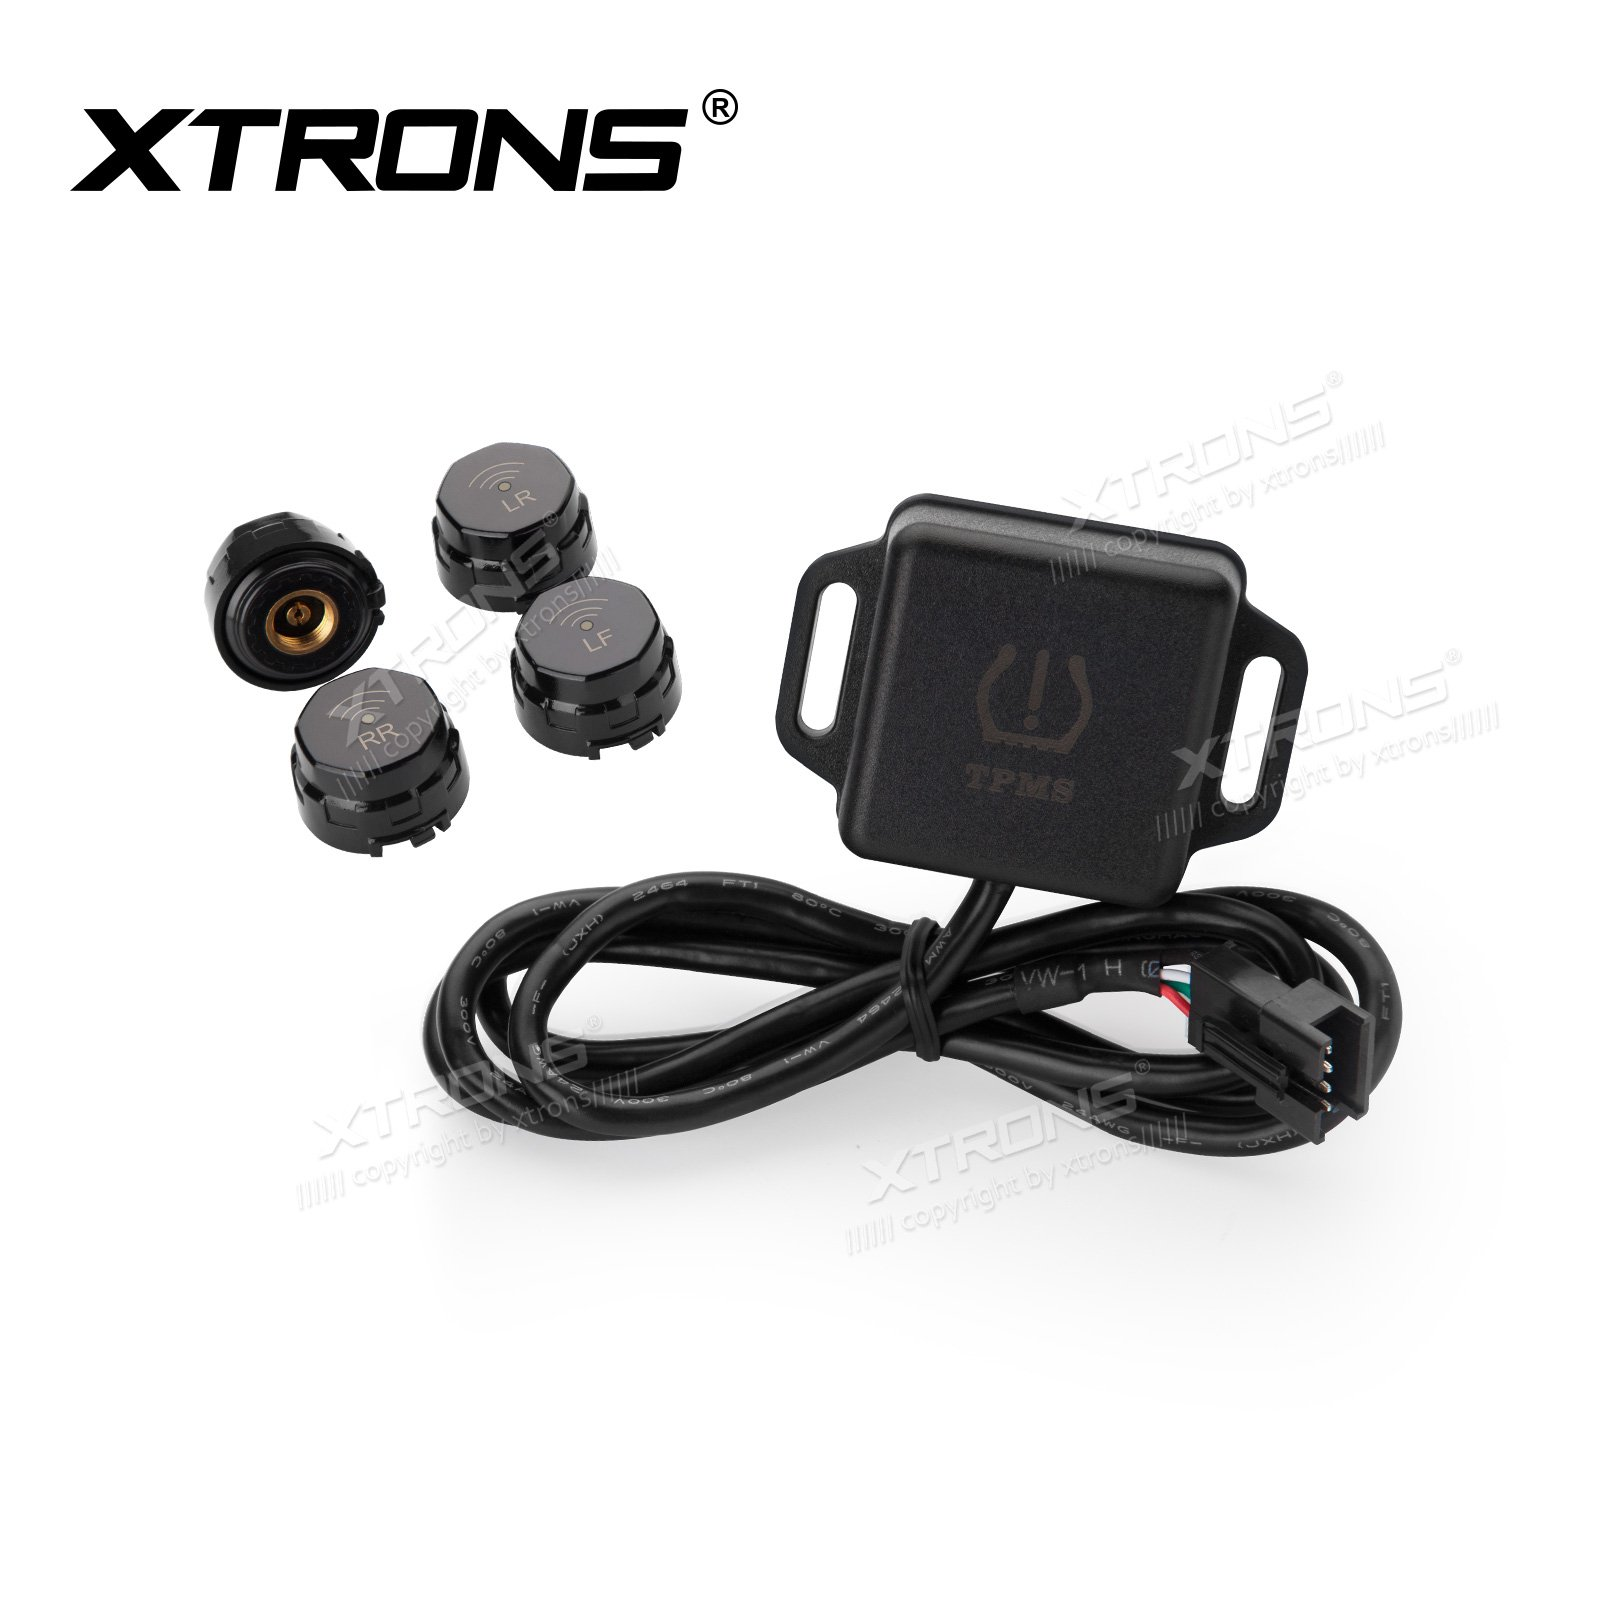 XTRONS Car Auto TPMS Tire Pressure Monitoring System for TA101P Headunit Player